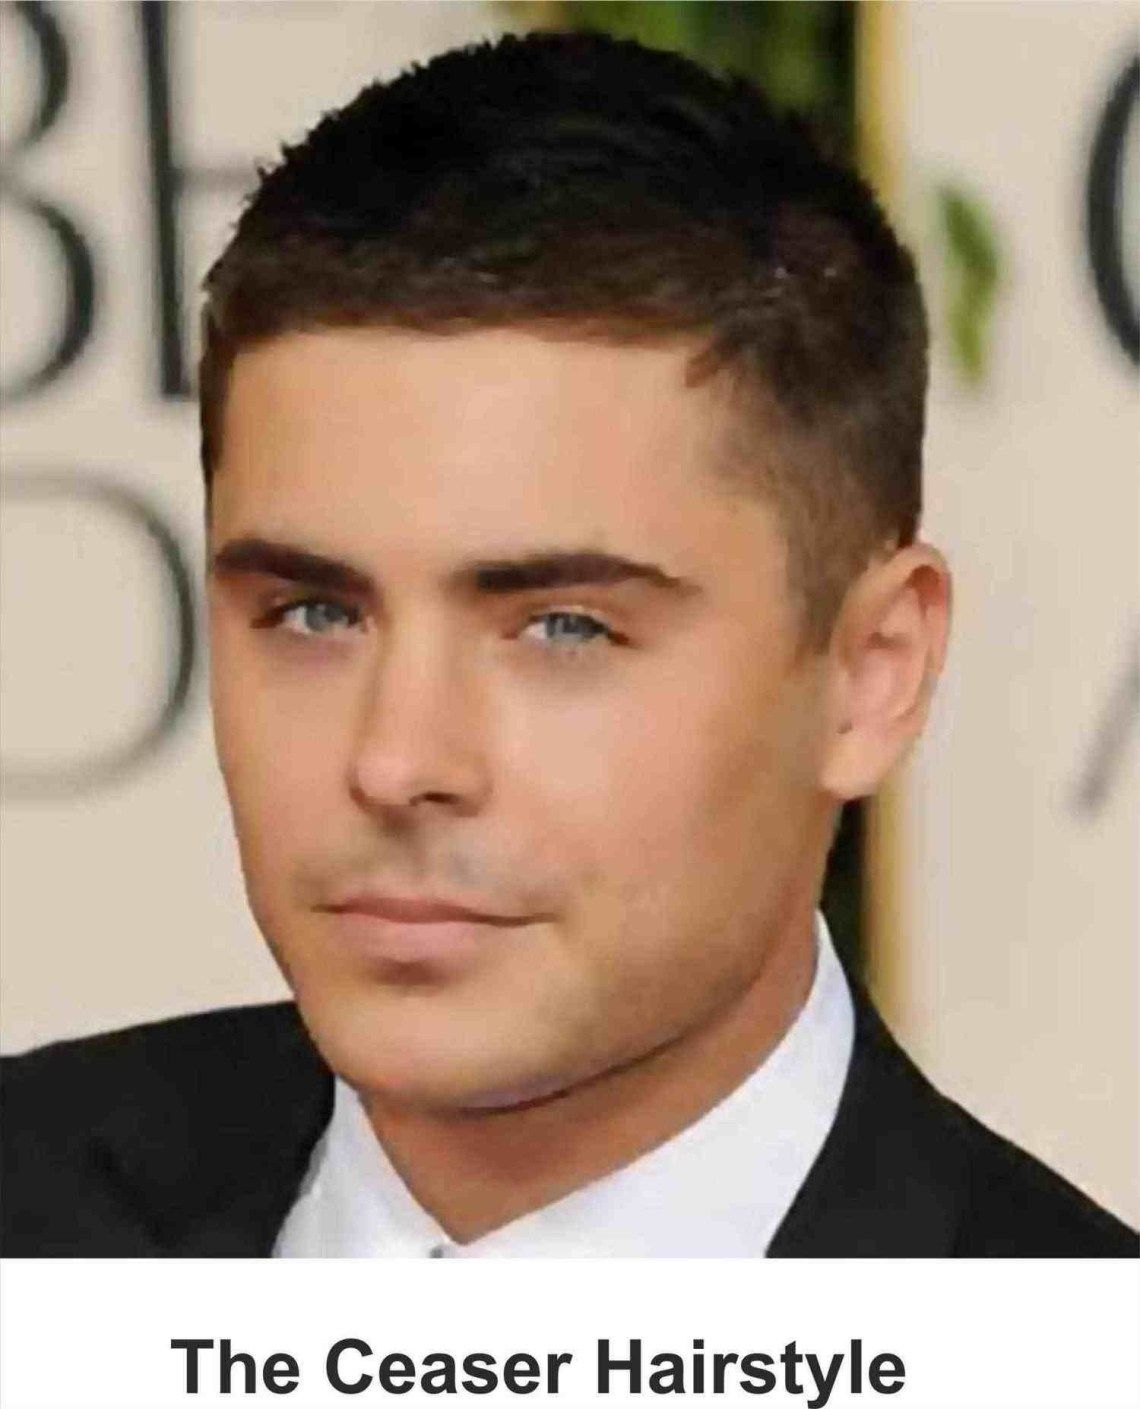 17 Populer Hairstyle For Round Face Man In India In 2020 Round Face Haircuts Round Face Men Gentleman Haircut